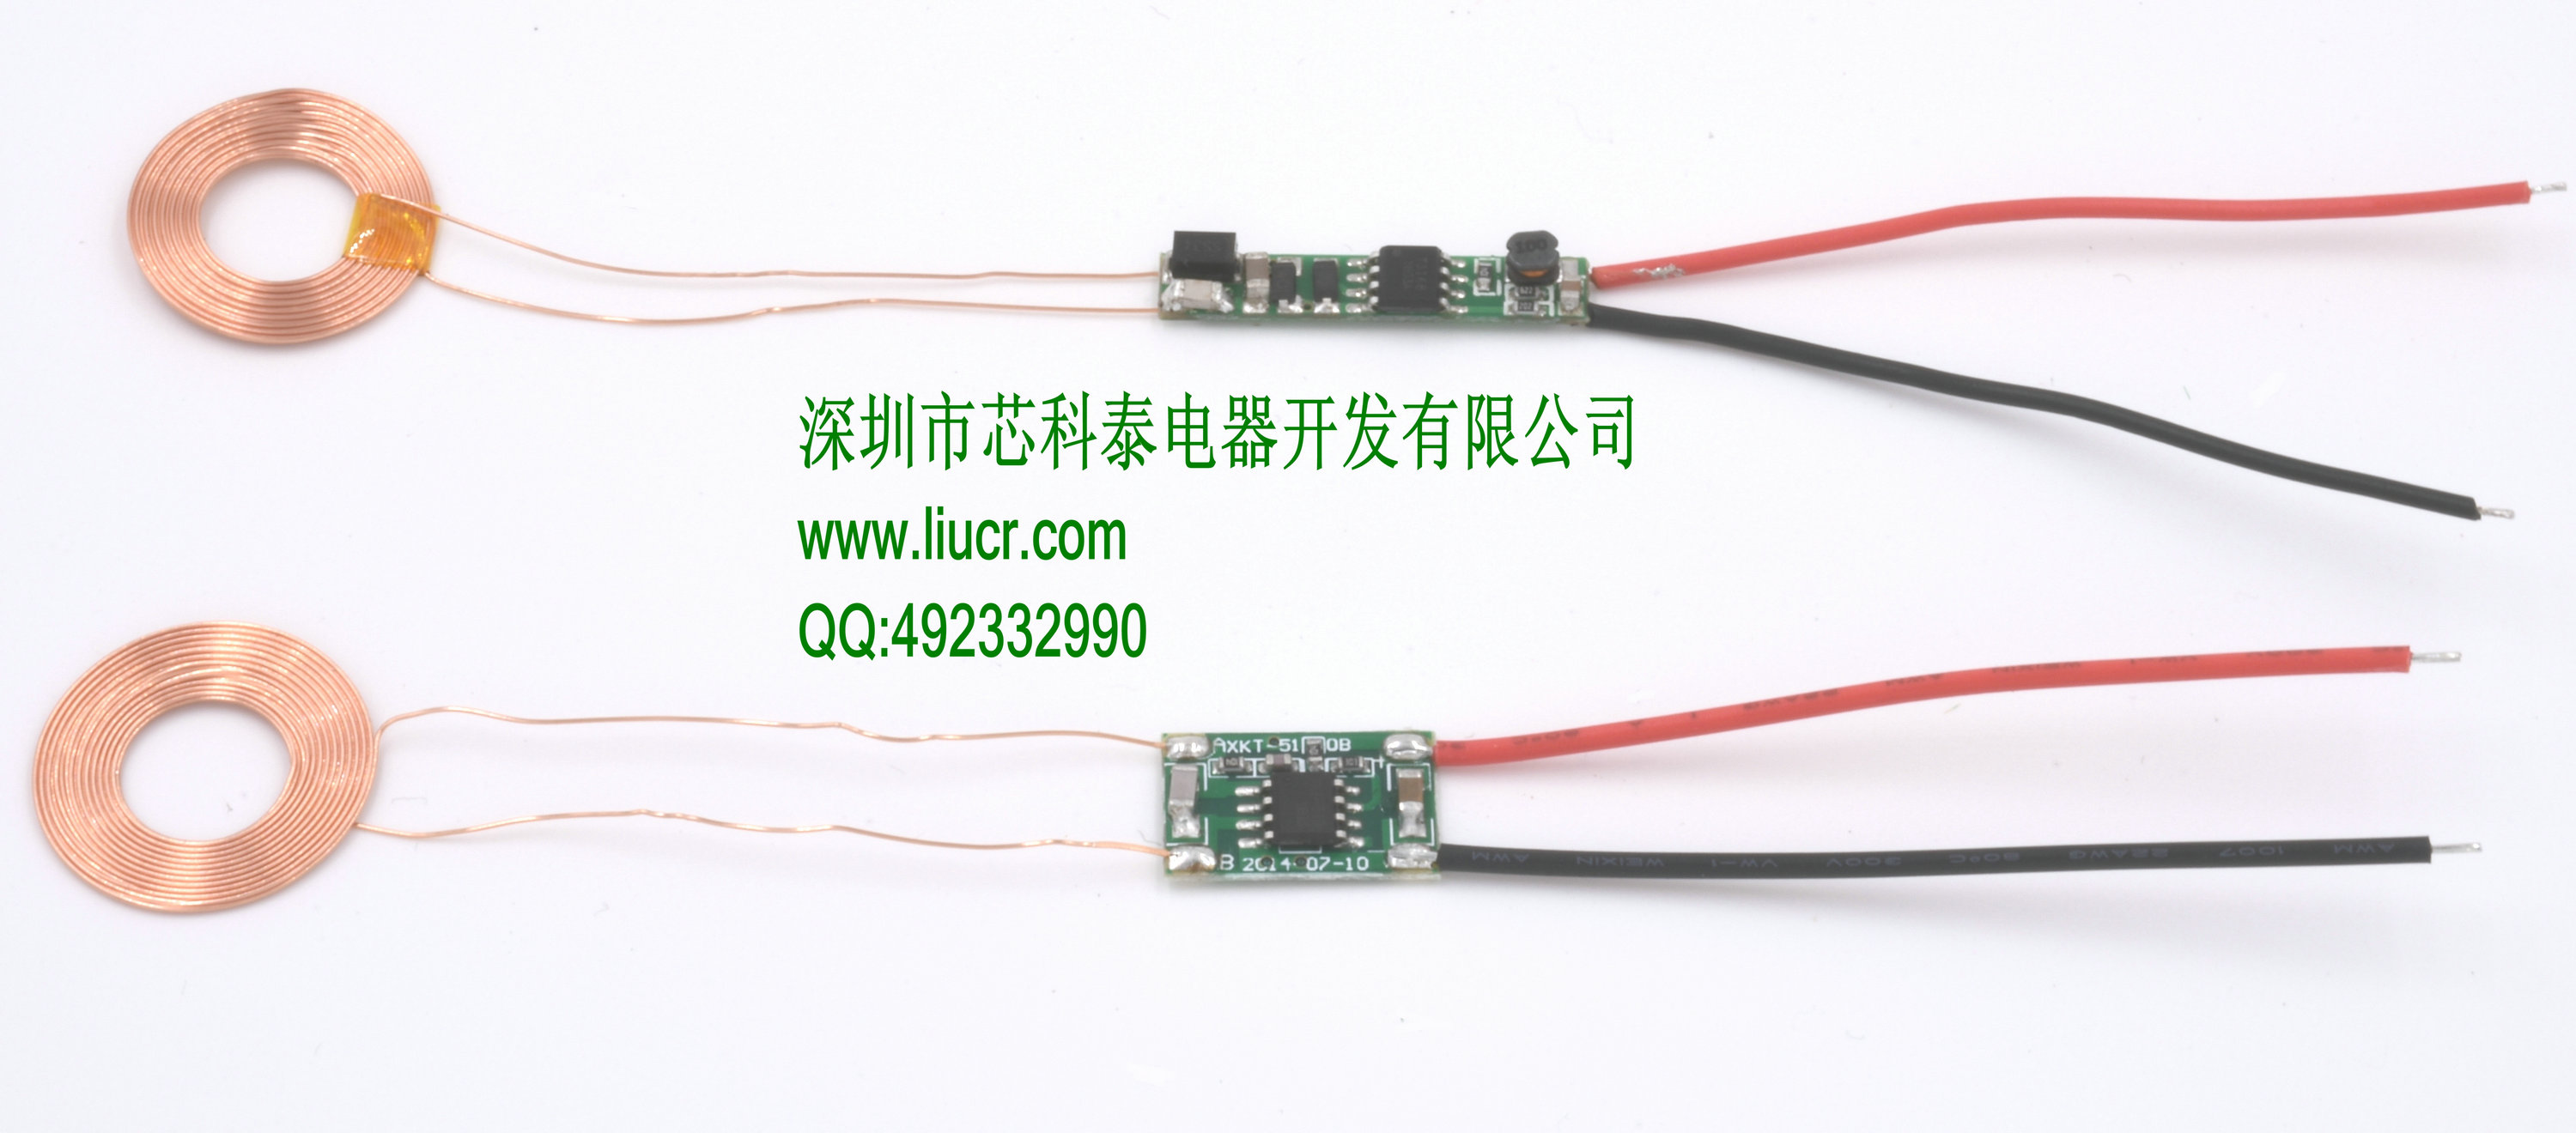 20mm Coil Wireless Charging Module Module 510 Chip Program